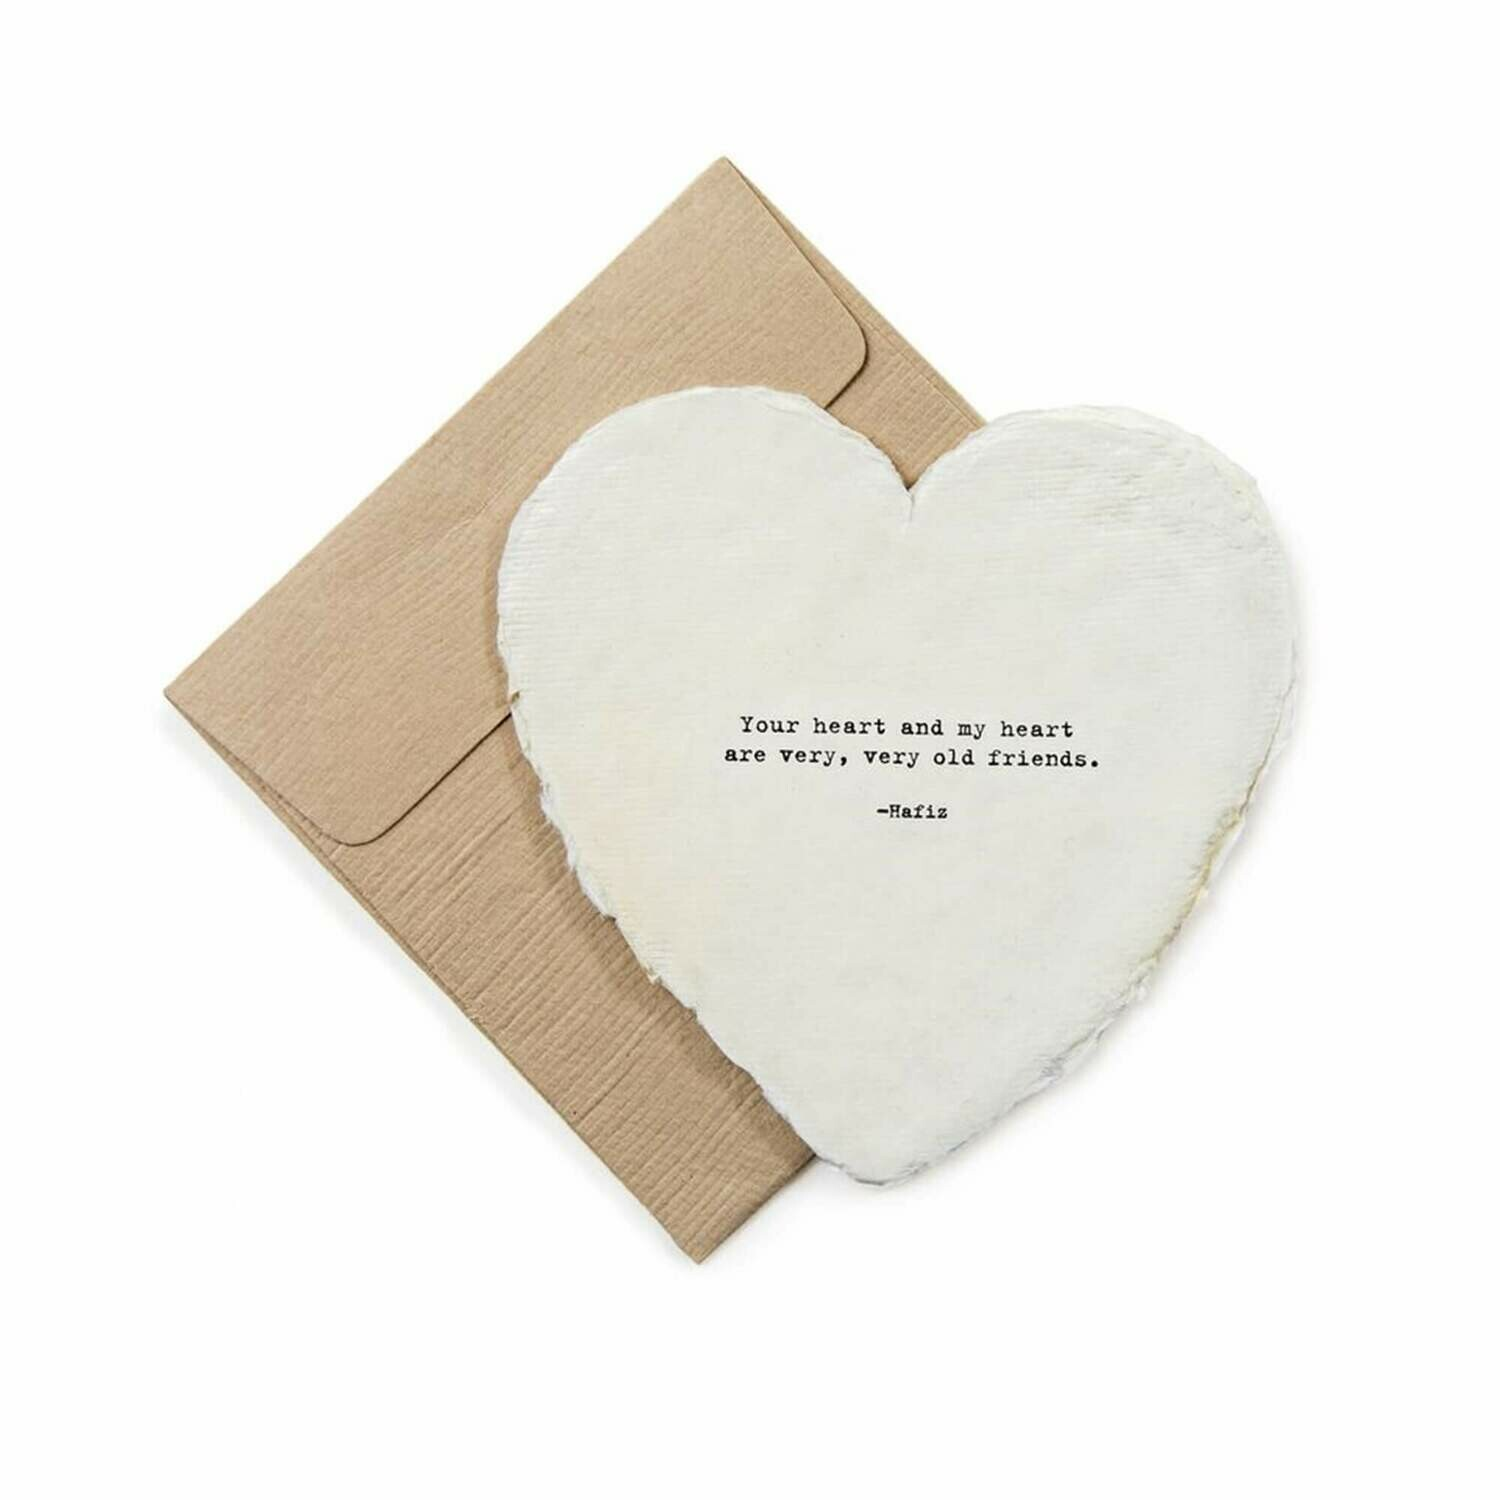 Mini Heart Shaped Card & Envelope-Your heart and my heart